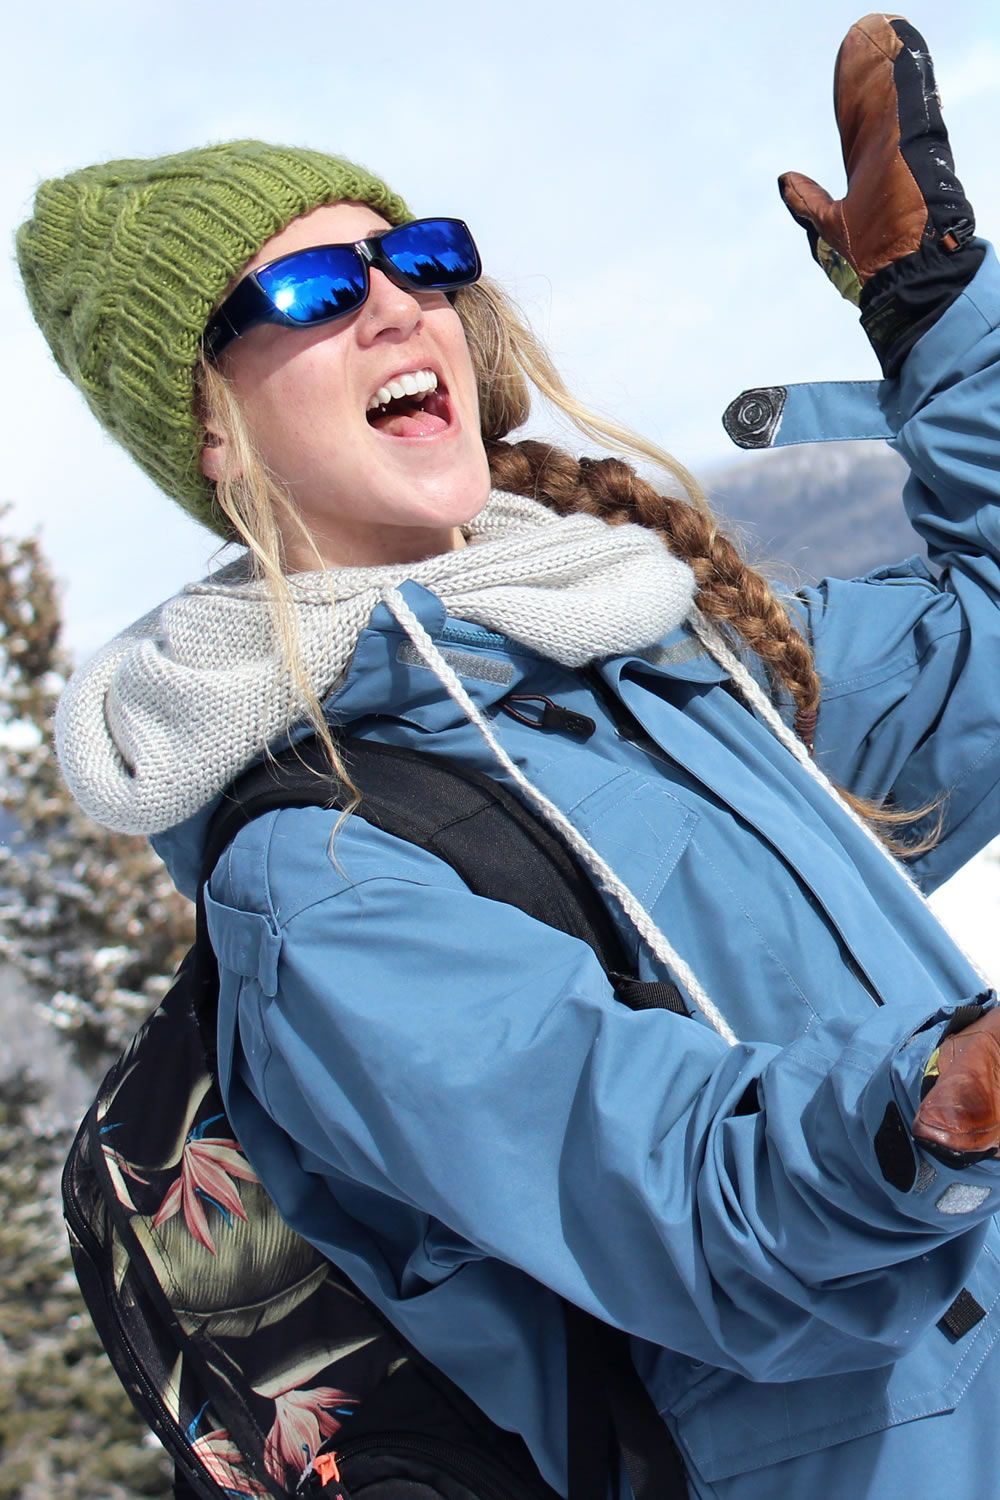 Neera Midnite Oil (Blue Mirror) fitover sunglasses by Jonathan Paul® are perfect for adventures in the snow. With 100% UVA/UVB protection, durable polycarbonate lenses and TR-90 Crystal Nylon™ frames, and 35 mirror lens styles, they're the best sunglass for your winter adventures!